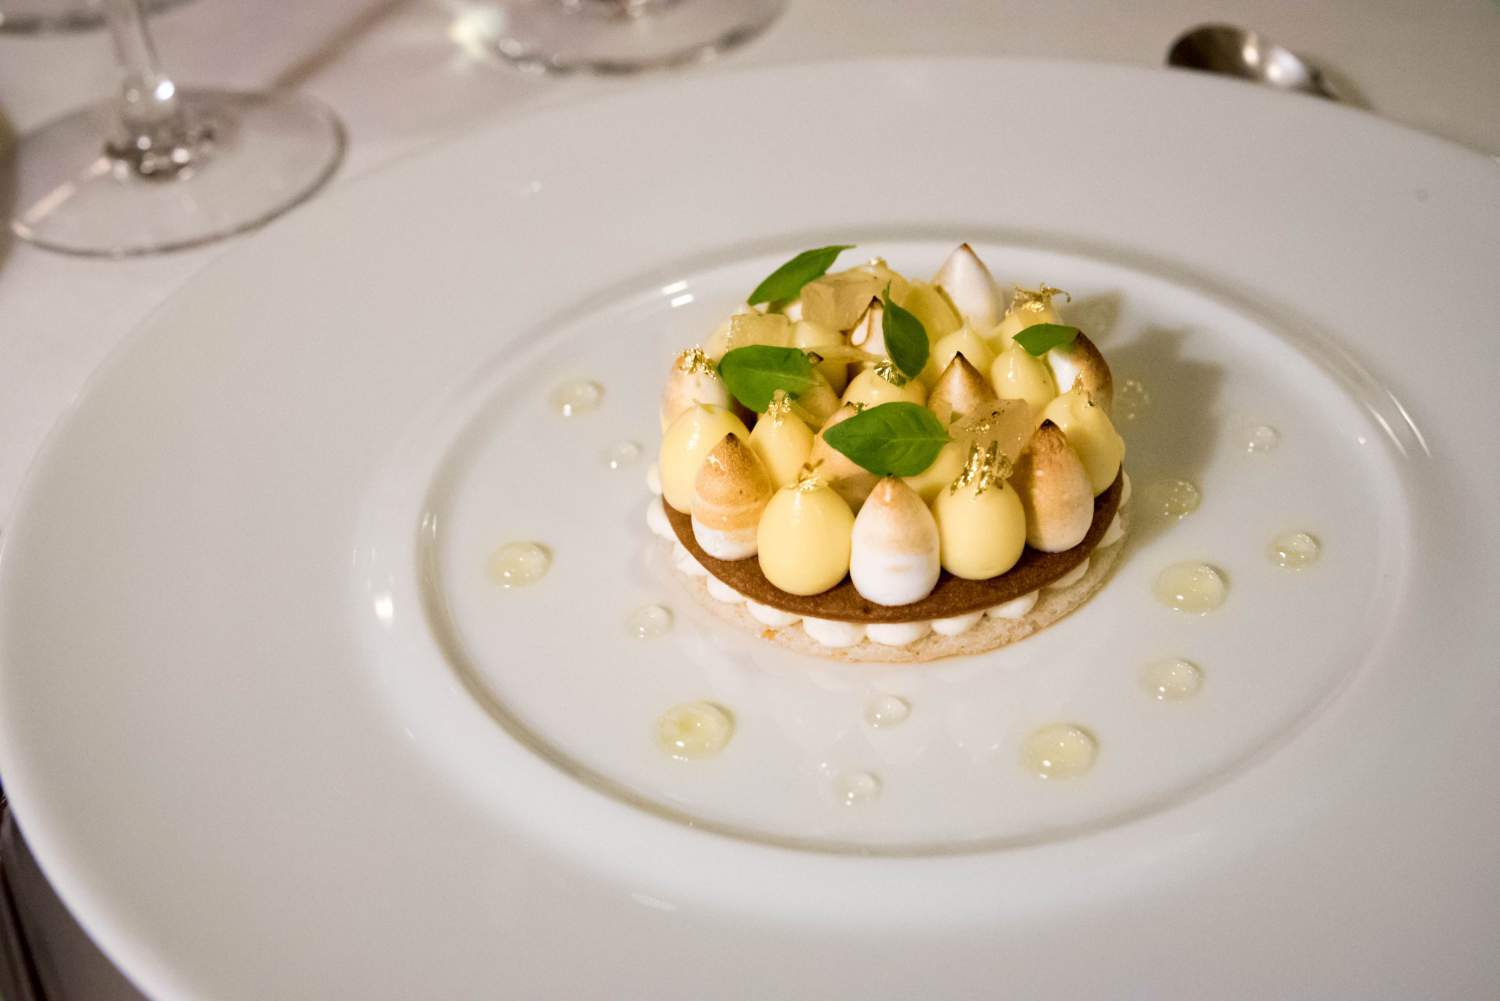 Lemon pie of Le Restaurant de L'Hôtel, Paris